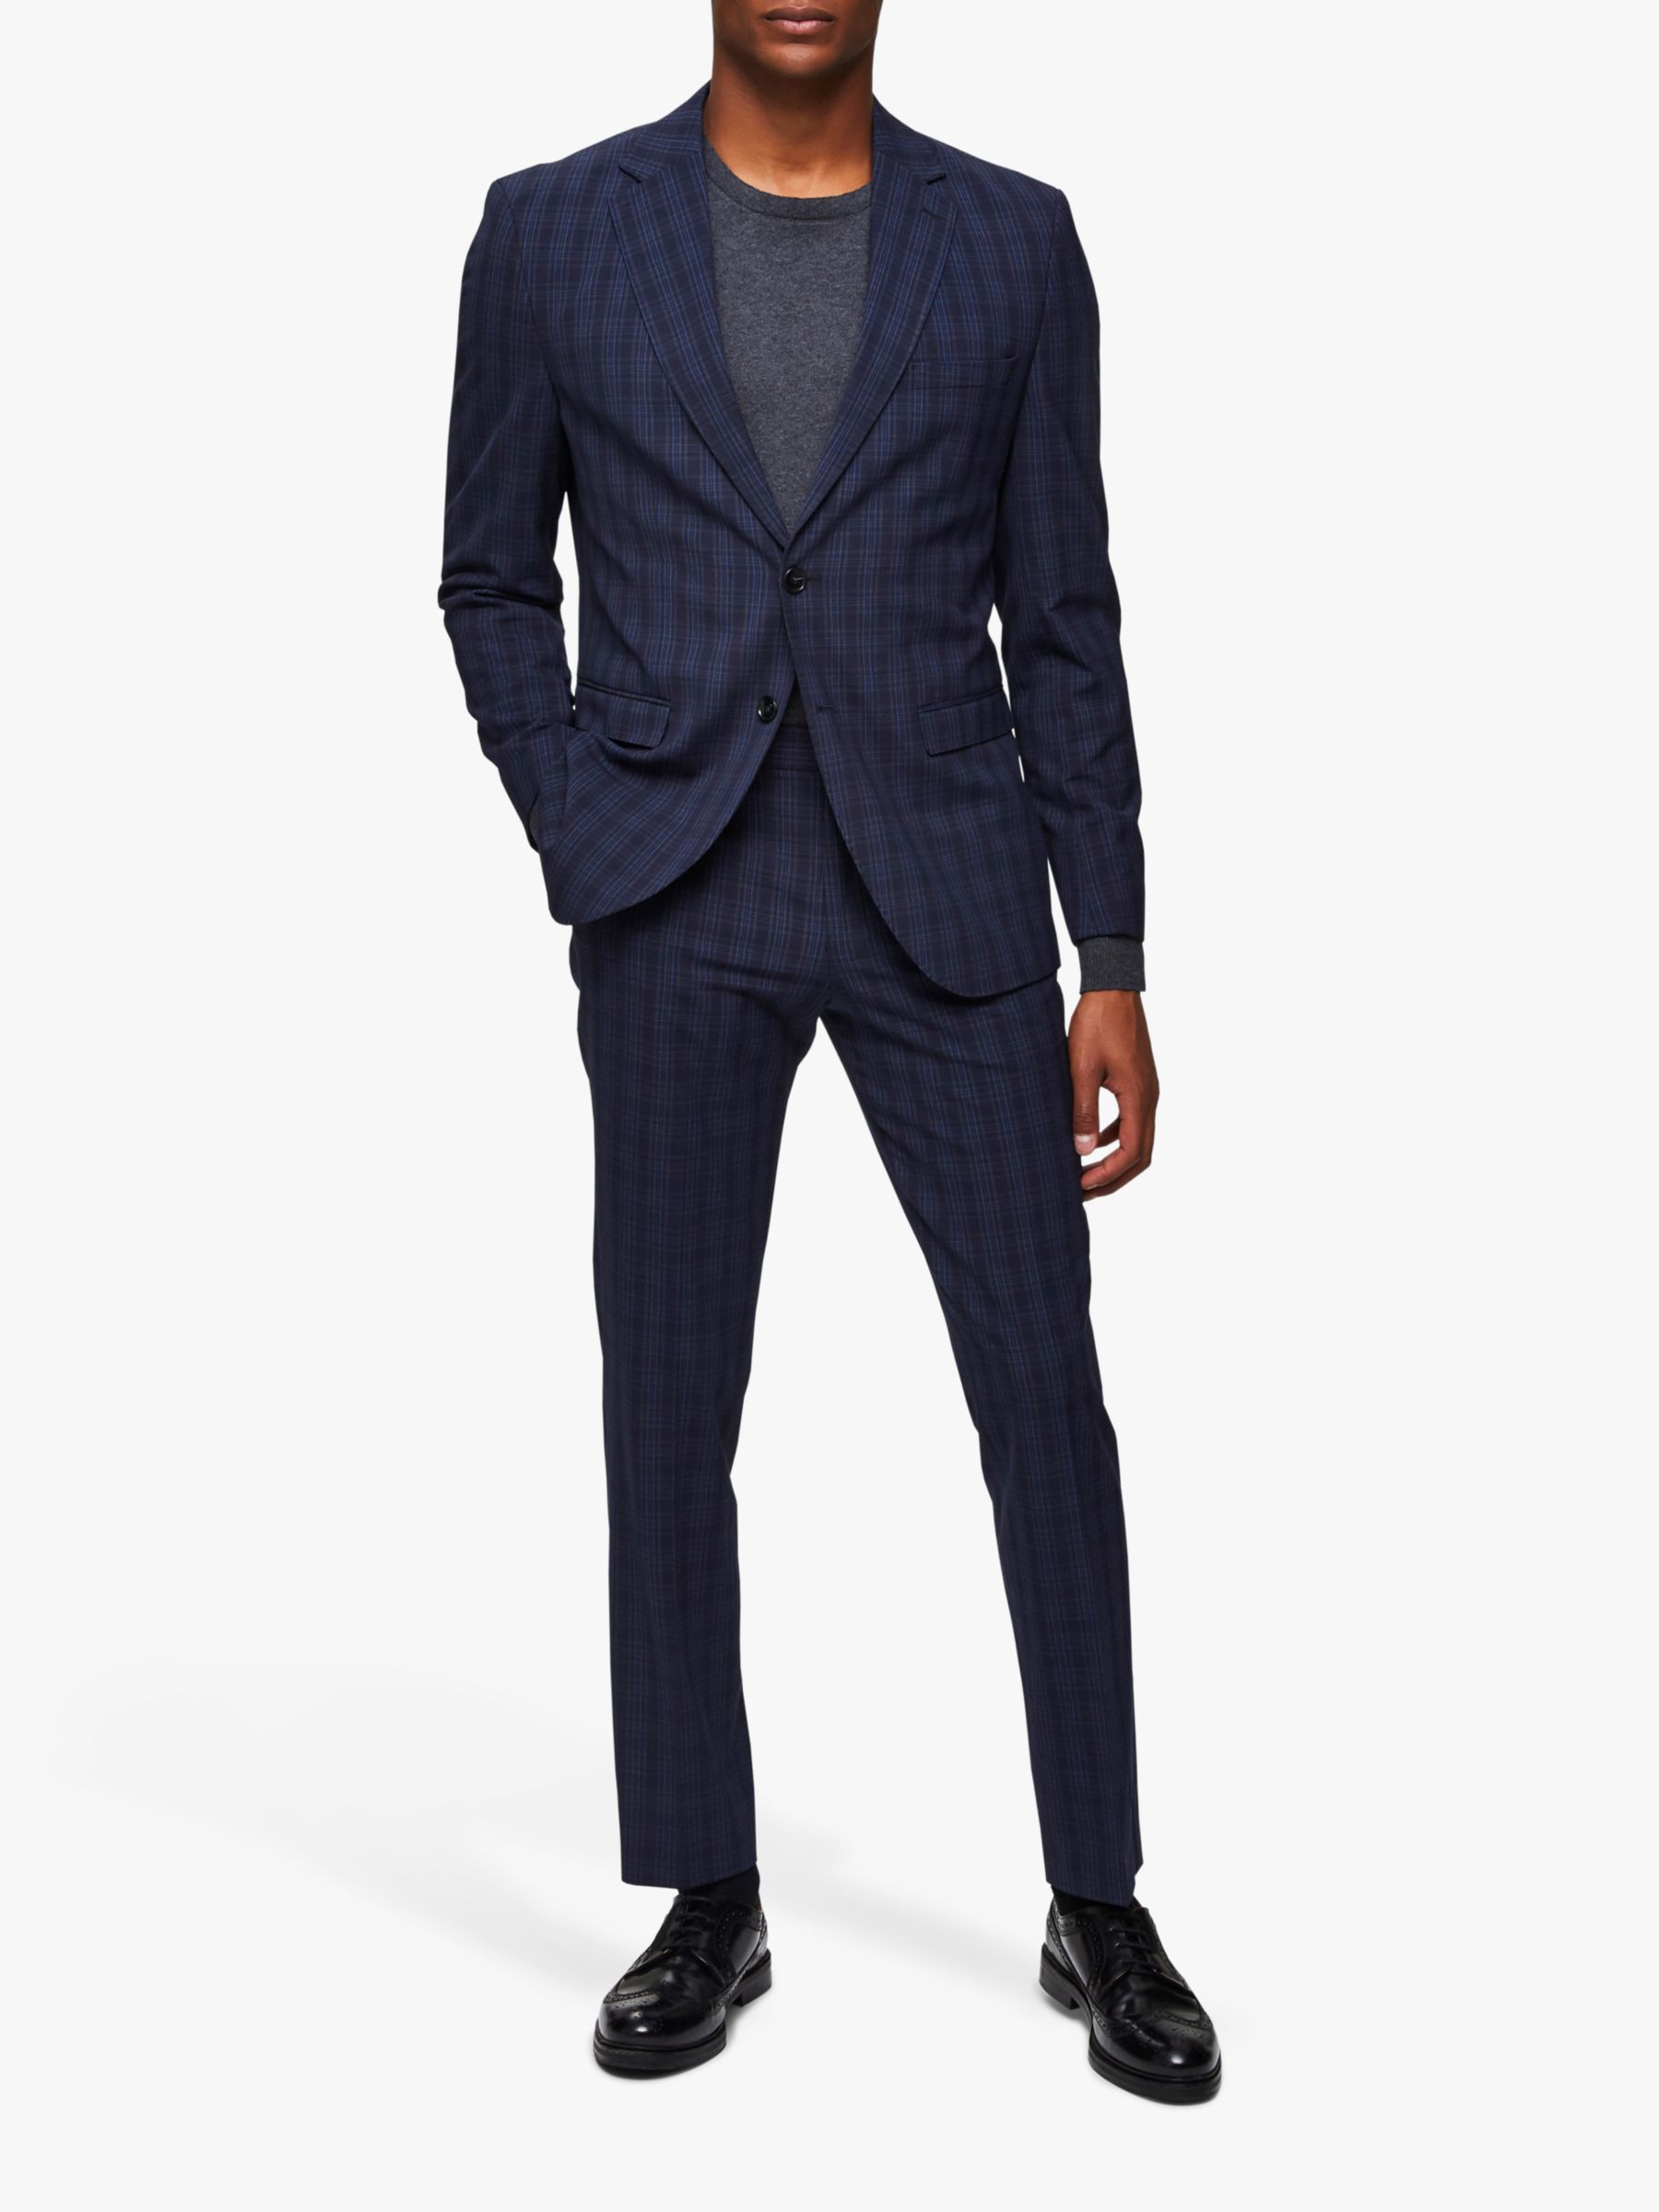 Selected Homme SELECTED HOMME Check Slim Fit Suit Jacket, Navy